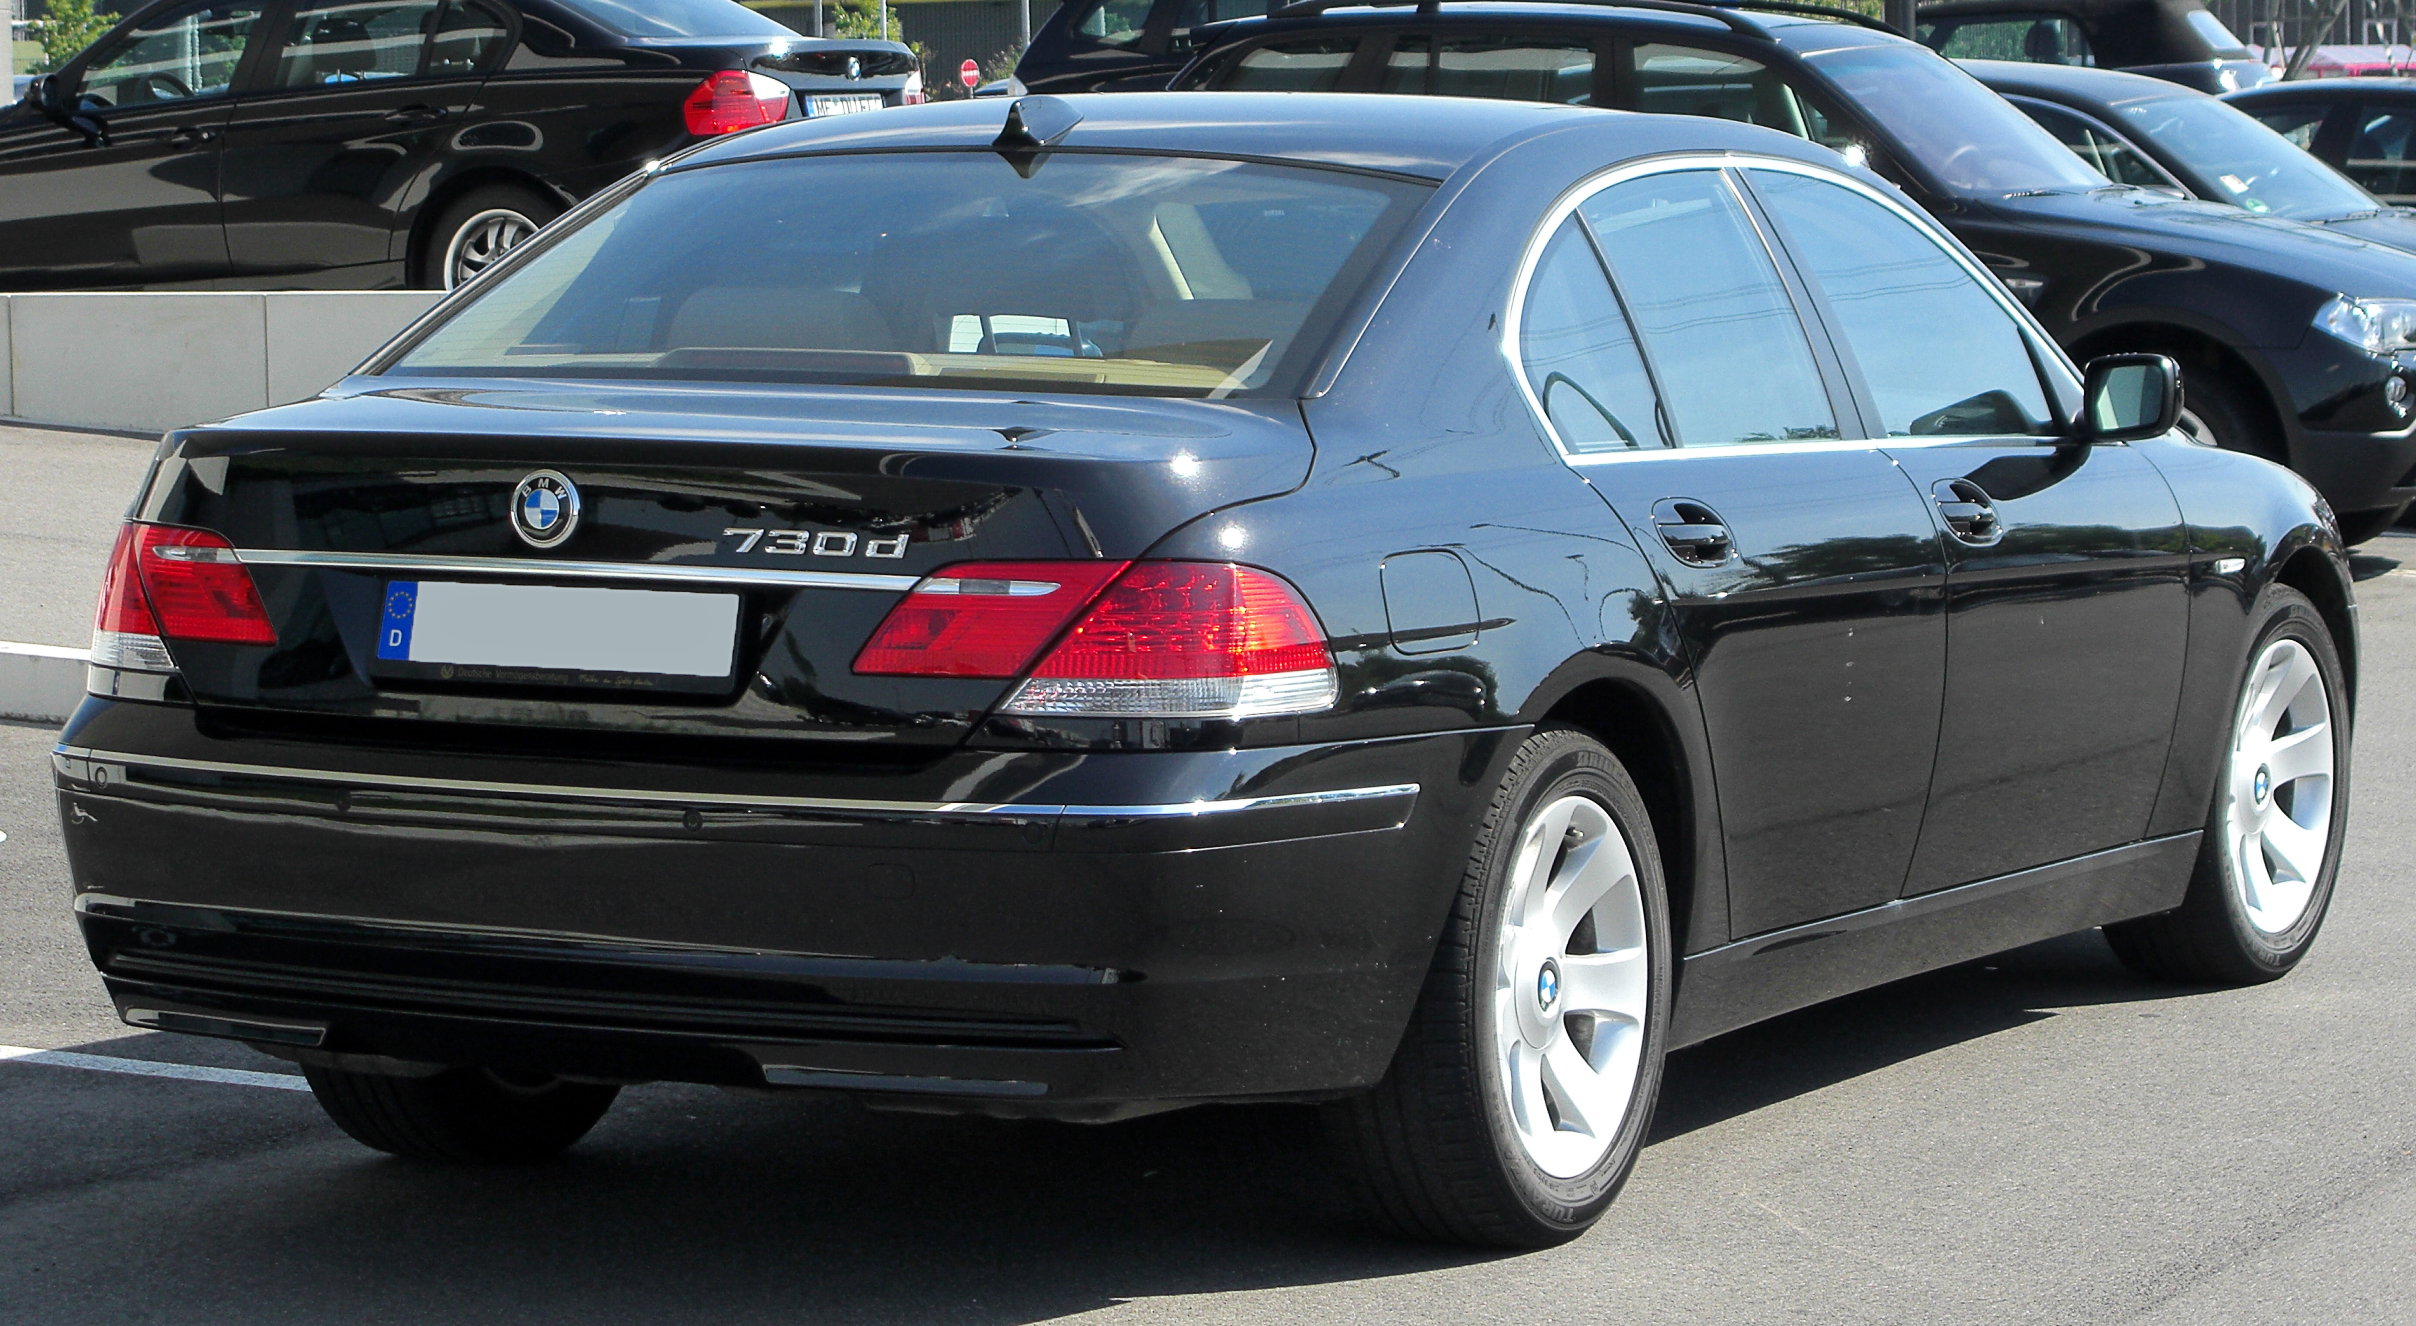 File Bmw 730d E65 Facelift Rear 20100718 Jpg Wikimedia